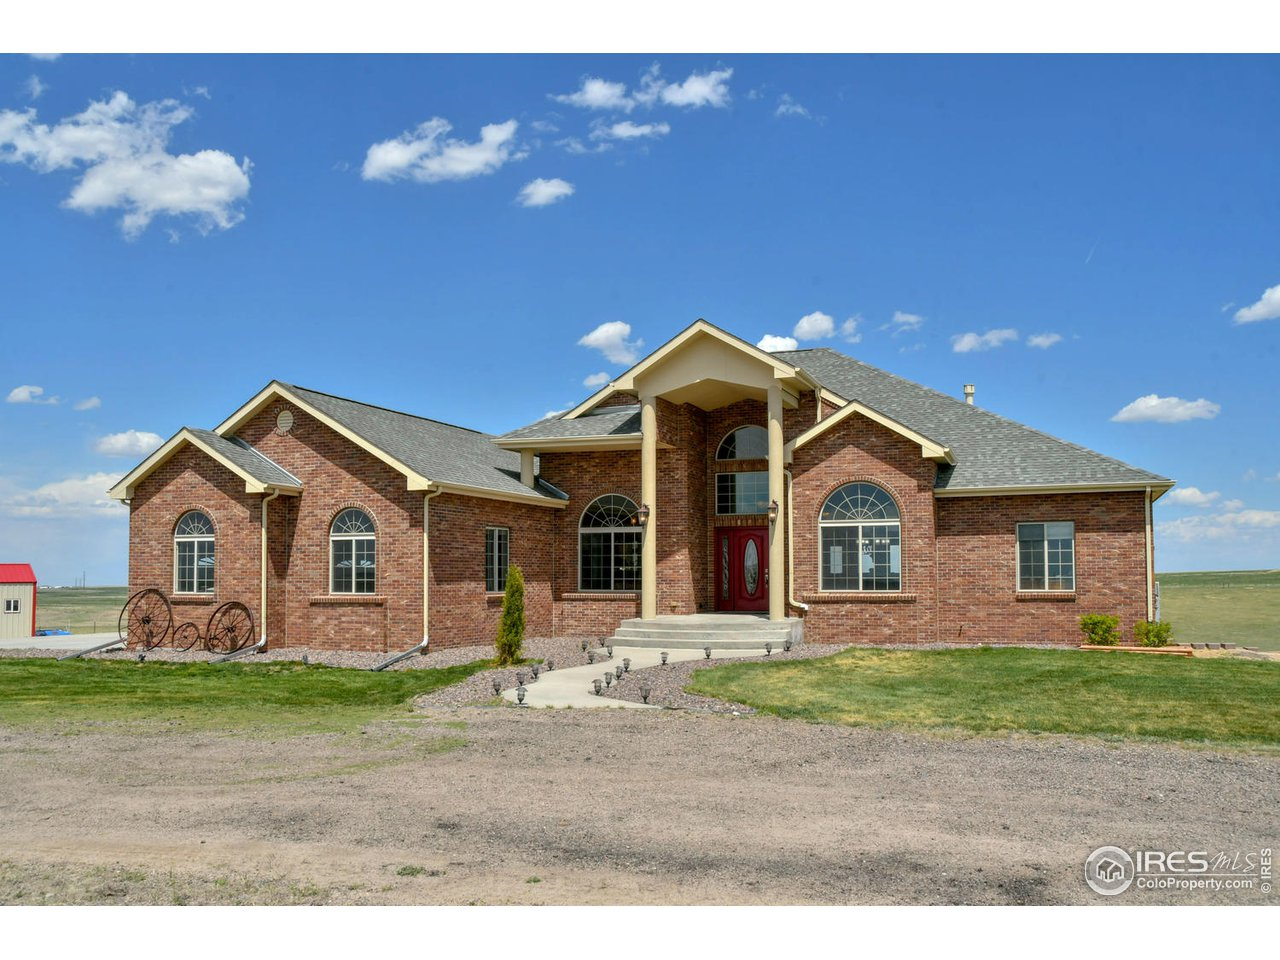 5504 S Lilly Creek Ct, Byers CO 80103